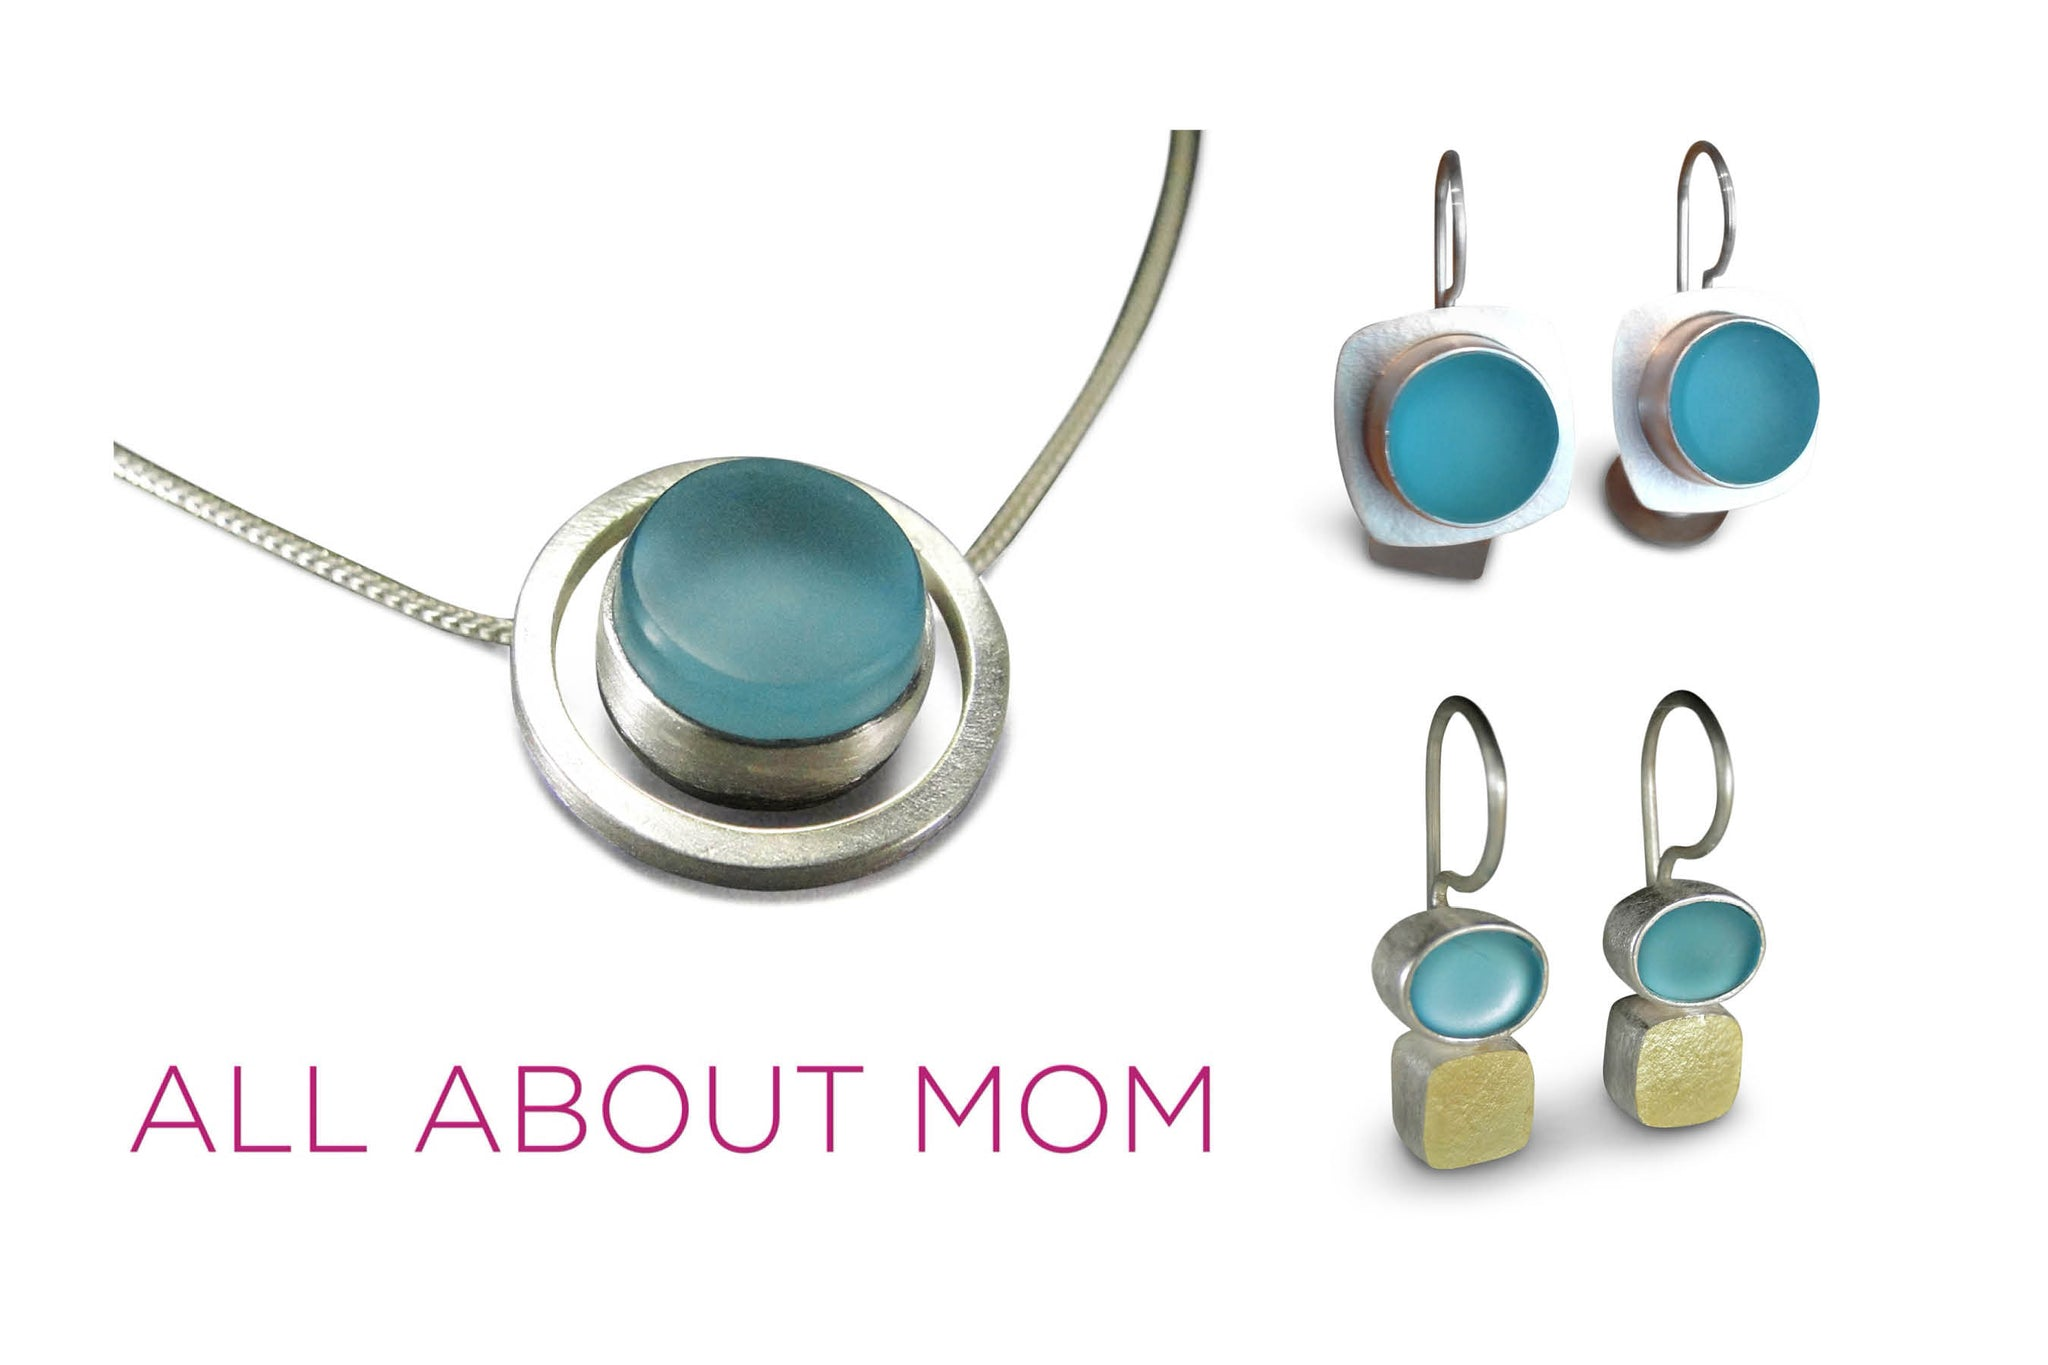 Most-loved gifts for Mom this Mother's Day